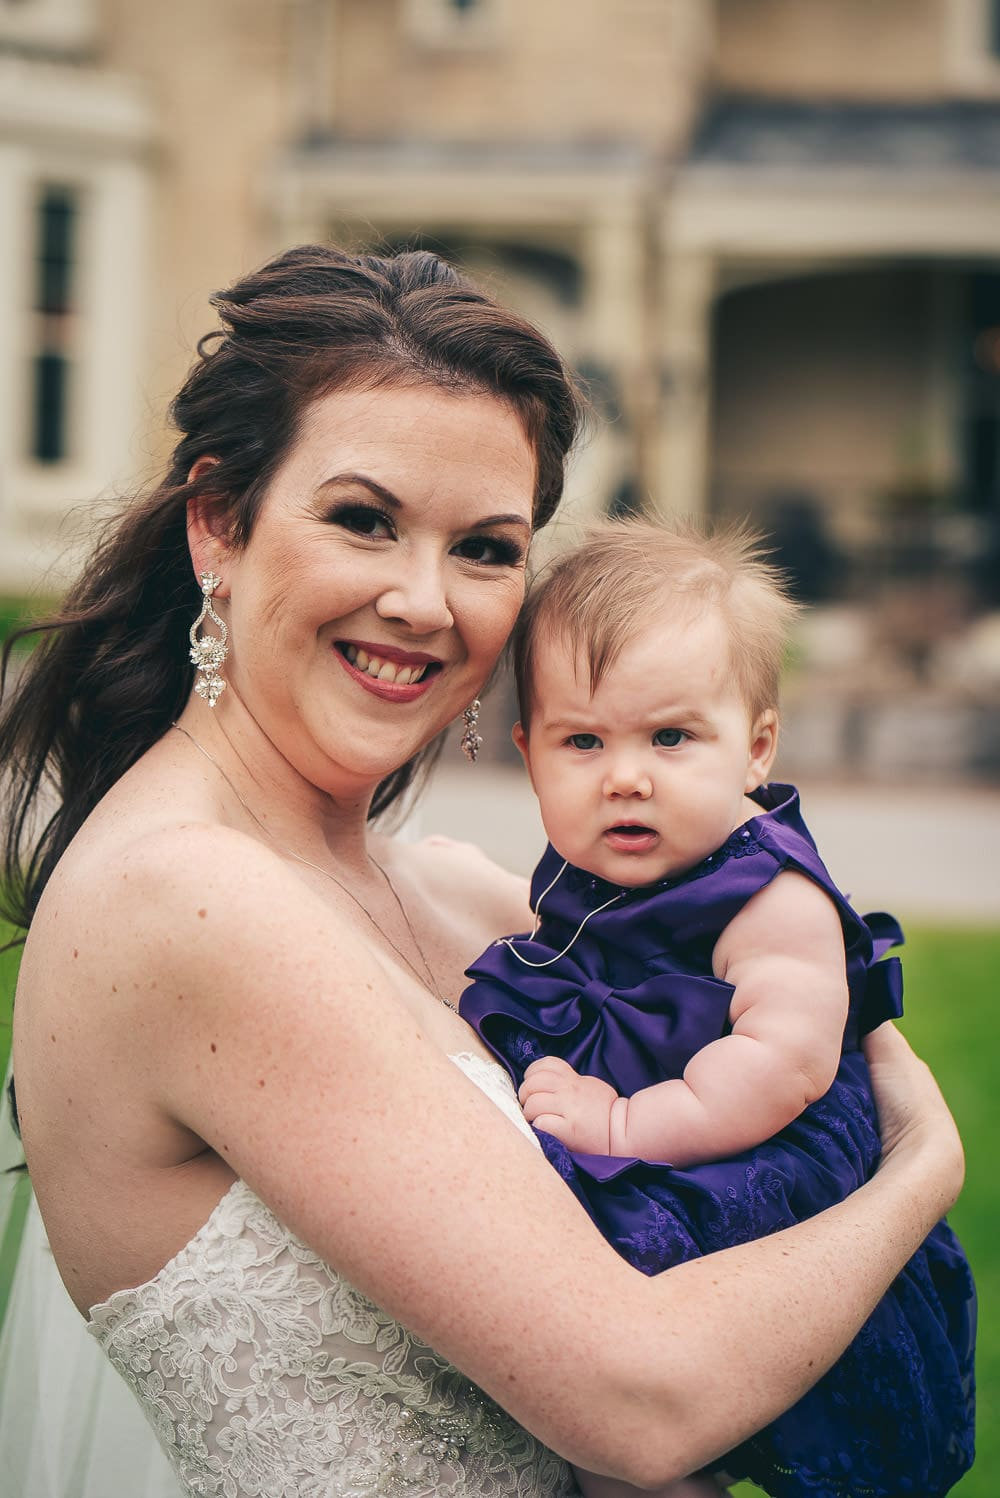 bride posing for picture with her daughter before wedding in front of the Elmhurst Inn